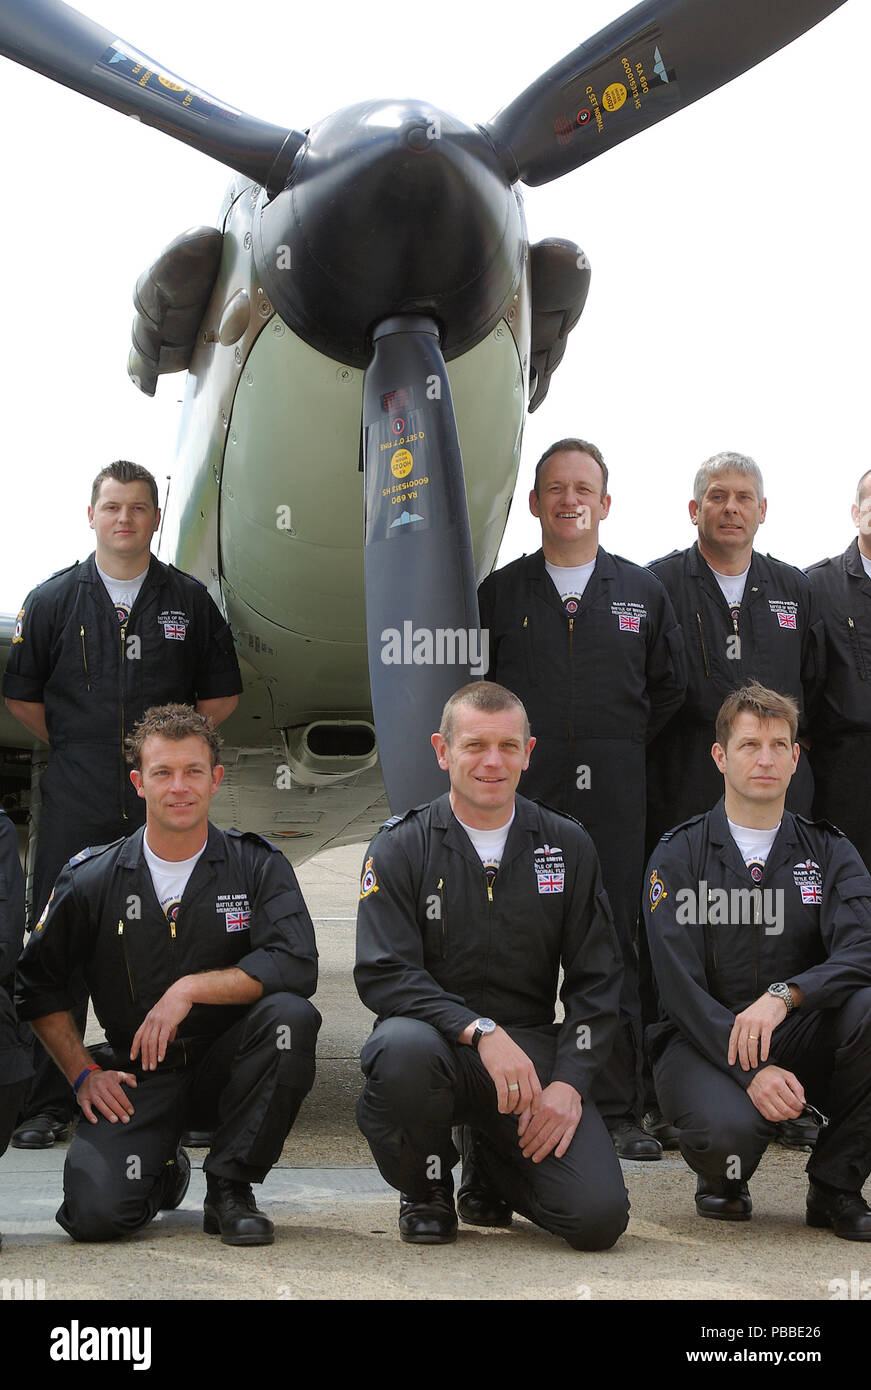 Royal Air Force RAF Battle of Britain Memorial Flight pilots and crew in front of a Second World War Supermarine Spitfire plane - Stock Image